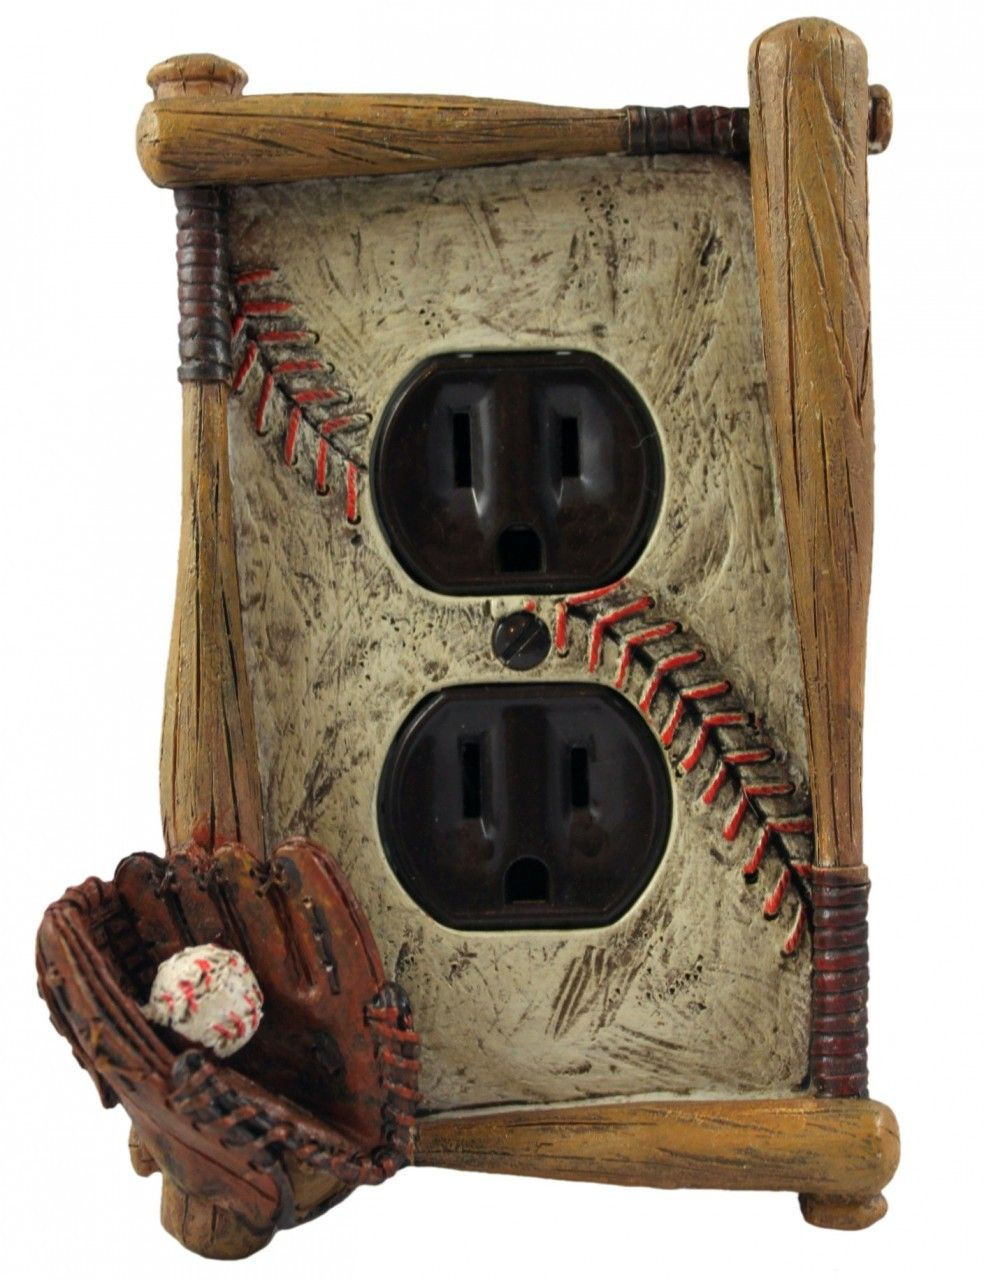 Baseball Bedroom Decor The Textured Element Baseball Themed Single Outlet Electrical